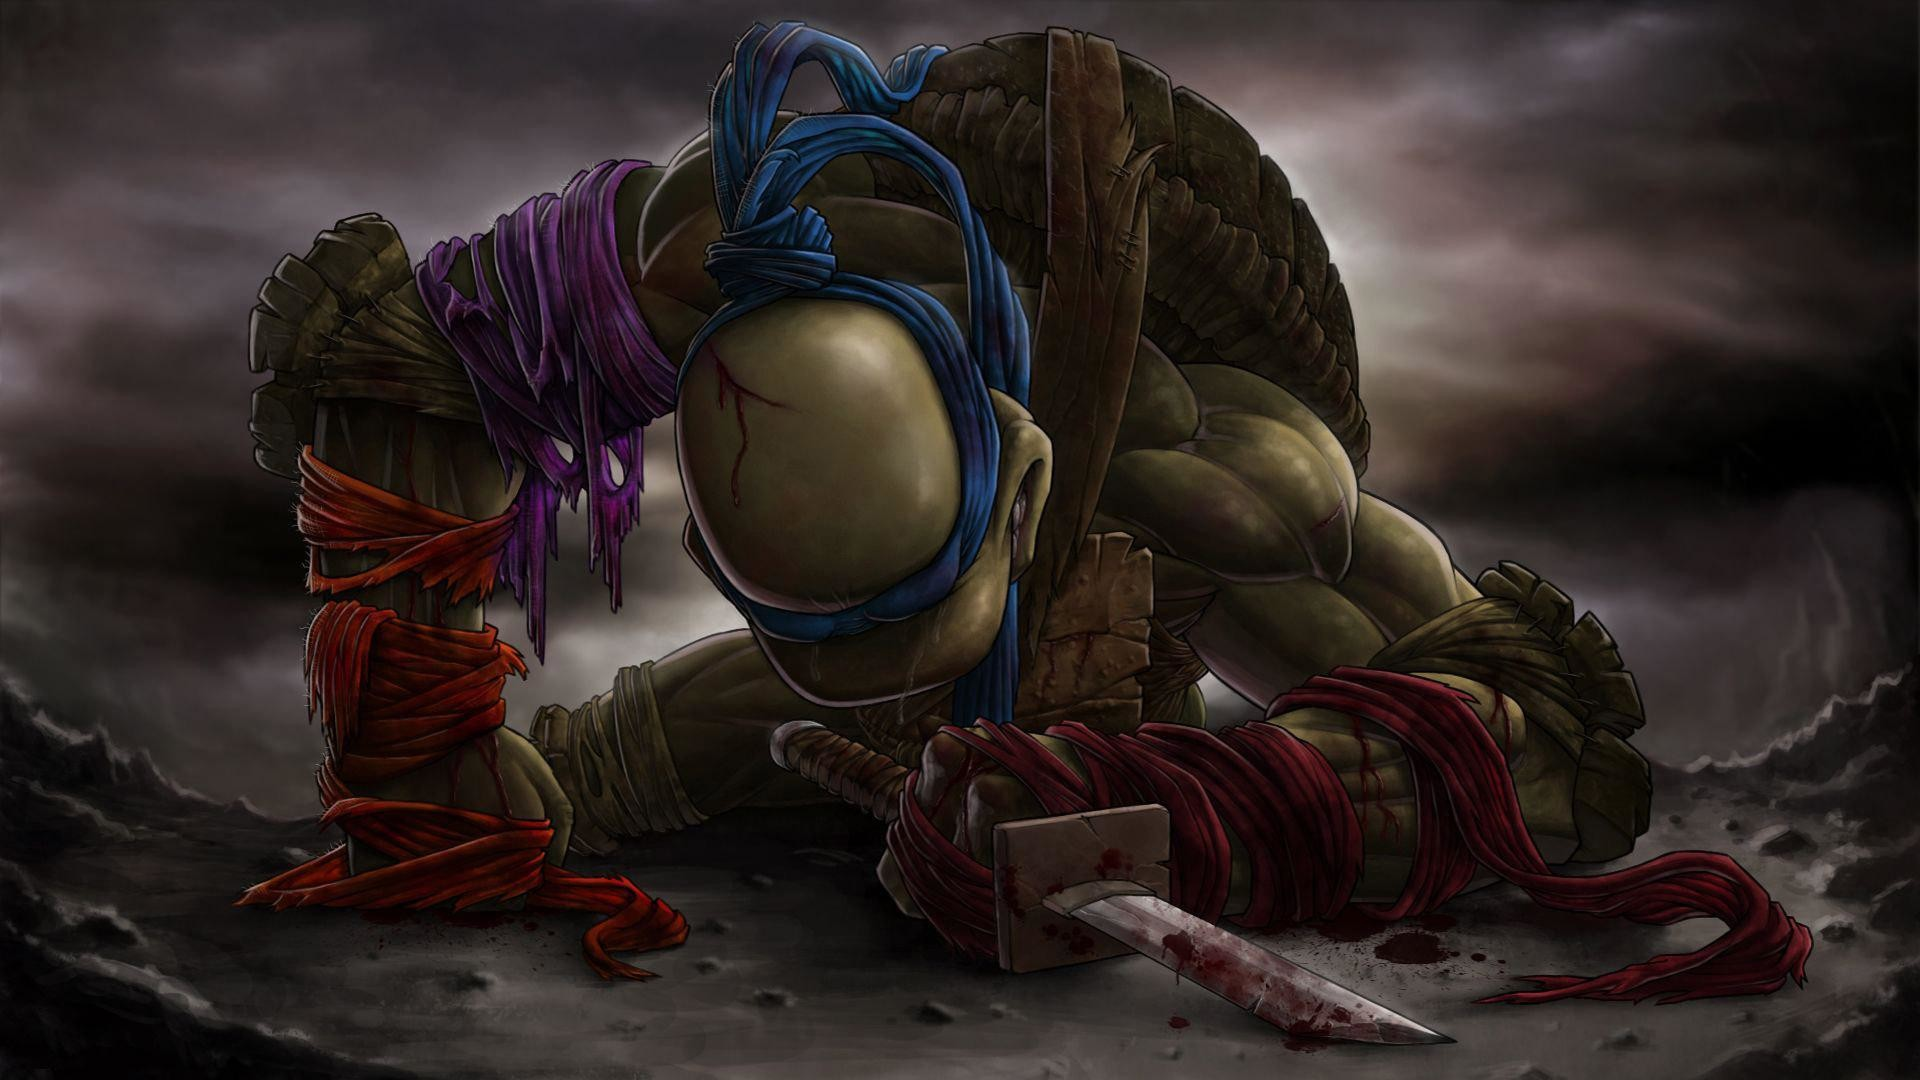 1920x1080 TMNT Wallpaper HD Wallpapers Desktop.